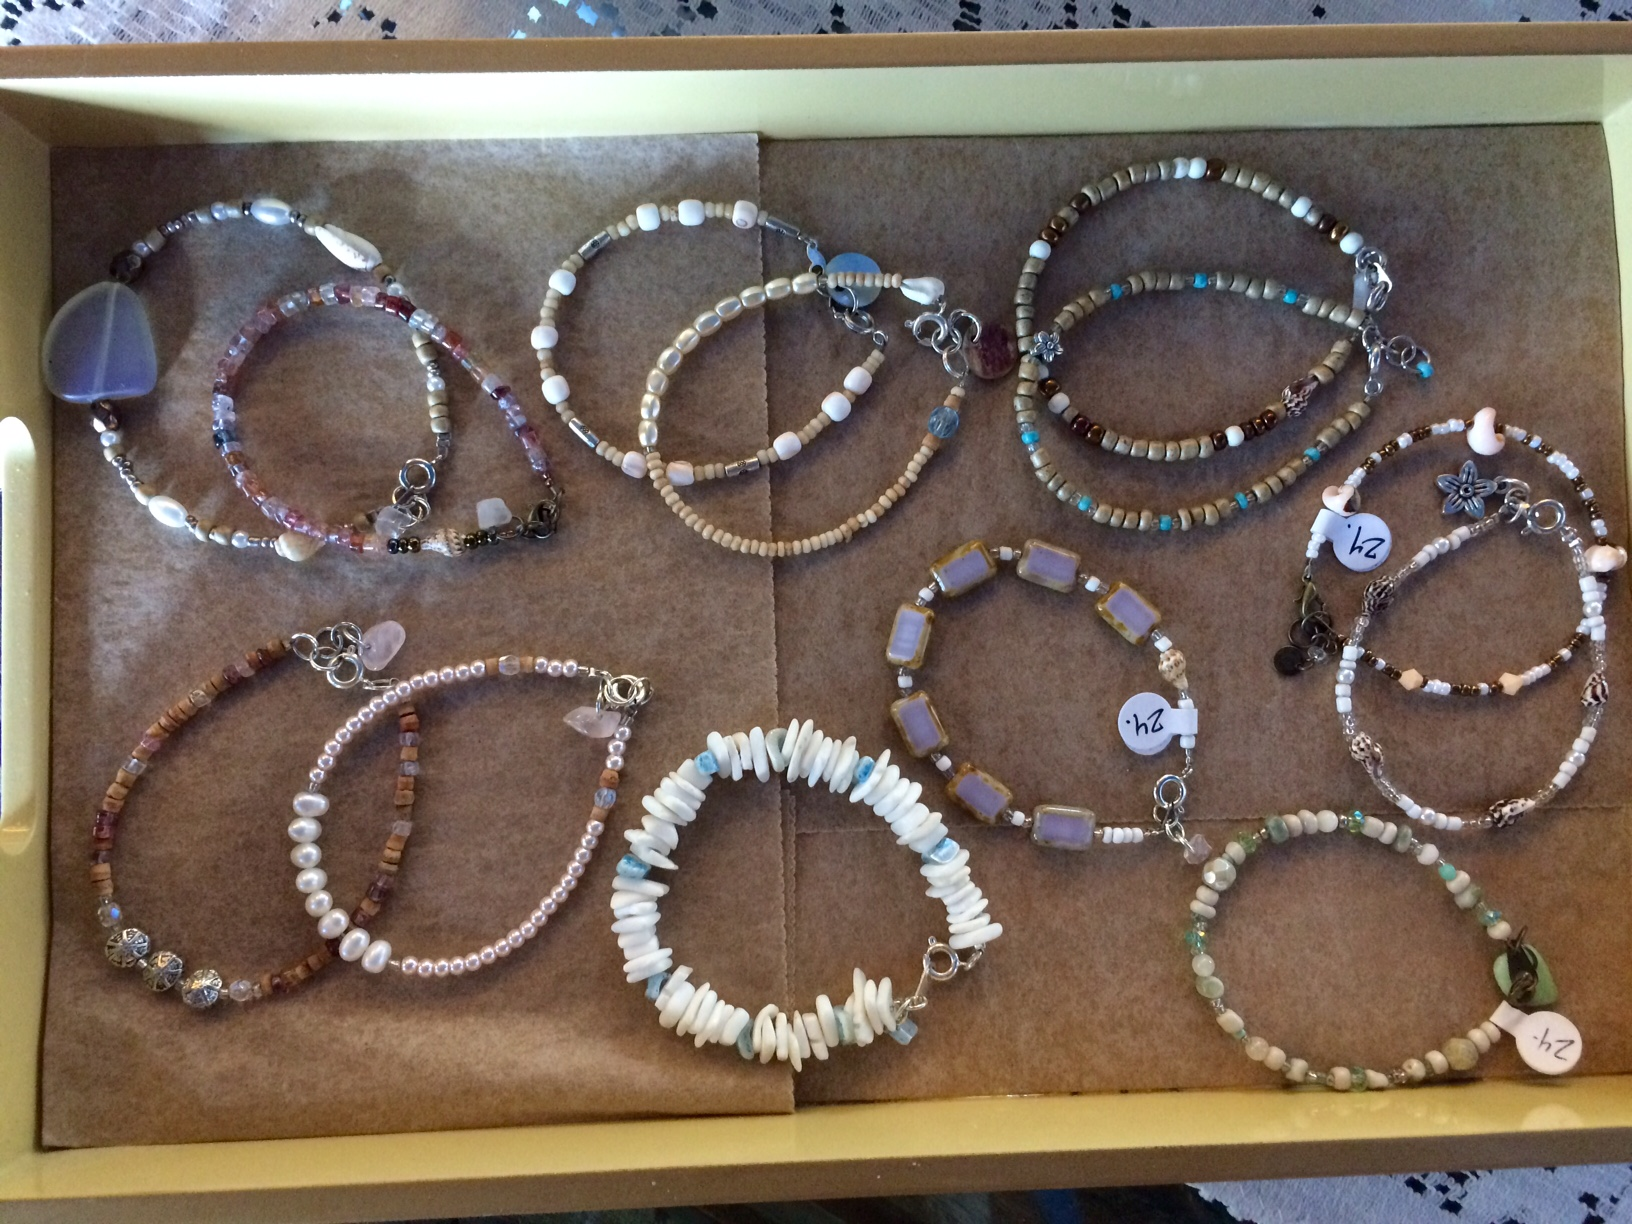 Mermaid Bracelets made with shells and other sea inspired beads.